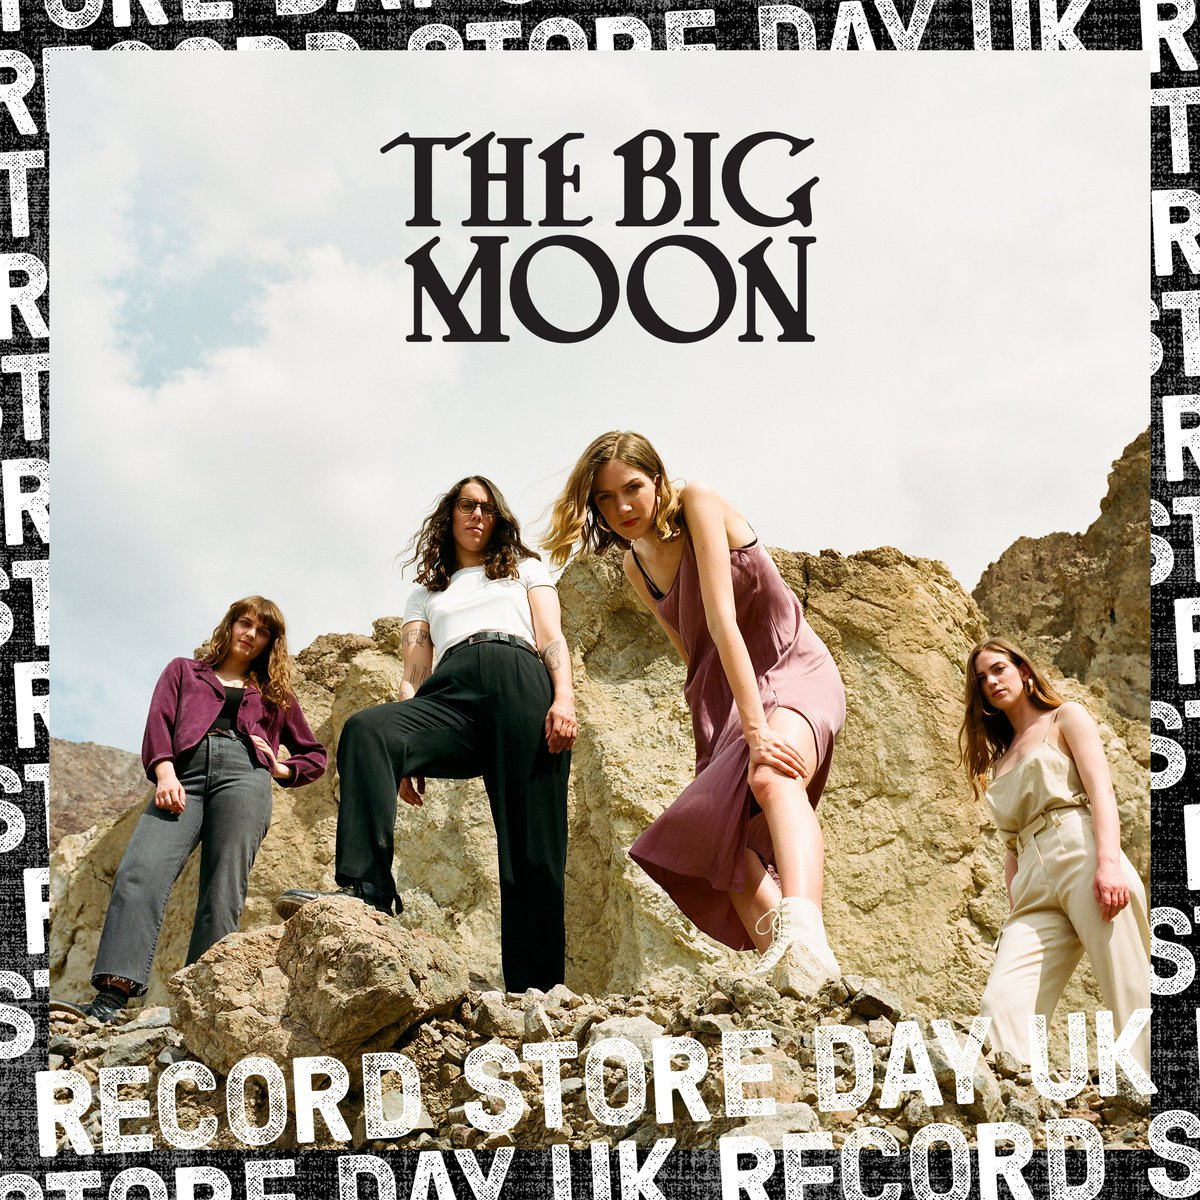 Our #RSD20 ambassadors are… @thebigmoon🌙 They will be creating a special one-off live to vinyl recording at @MetropStudios on 5th March to celebrate. If you want to be there, you've got a chance to win tickets >>> https://t.co/YSgAILslcC https://t.co/abisTcNgvF